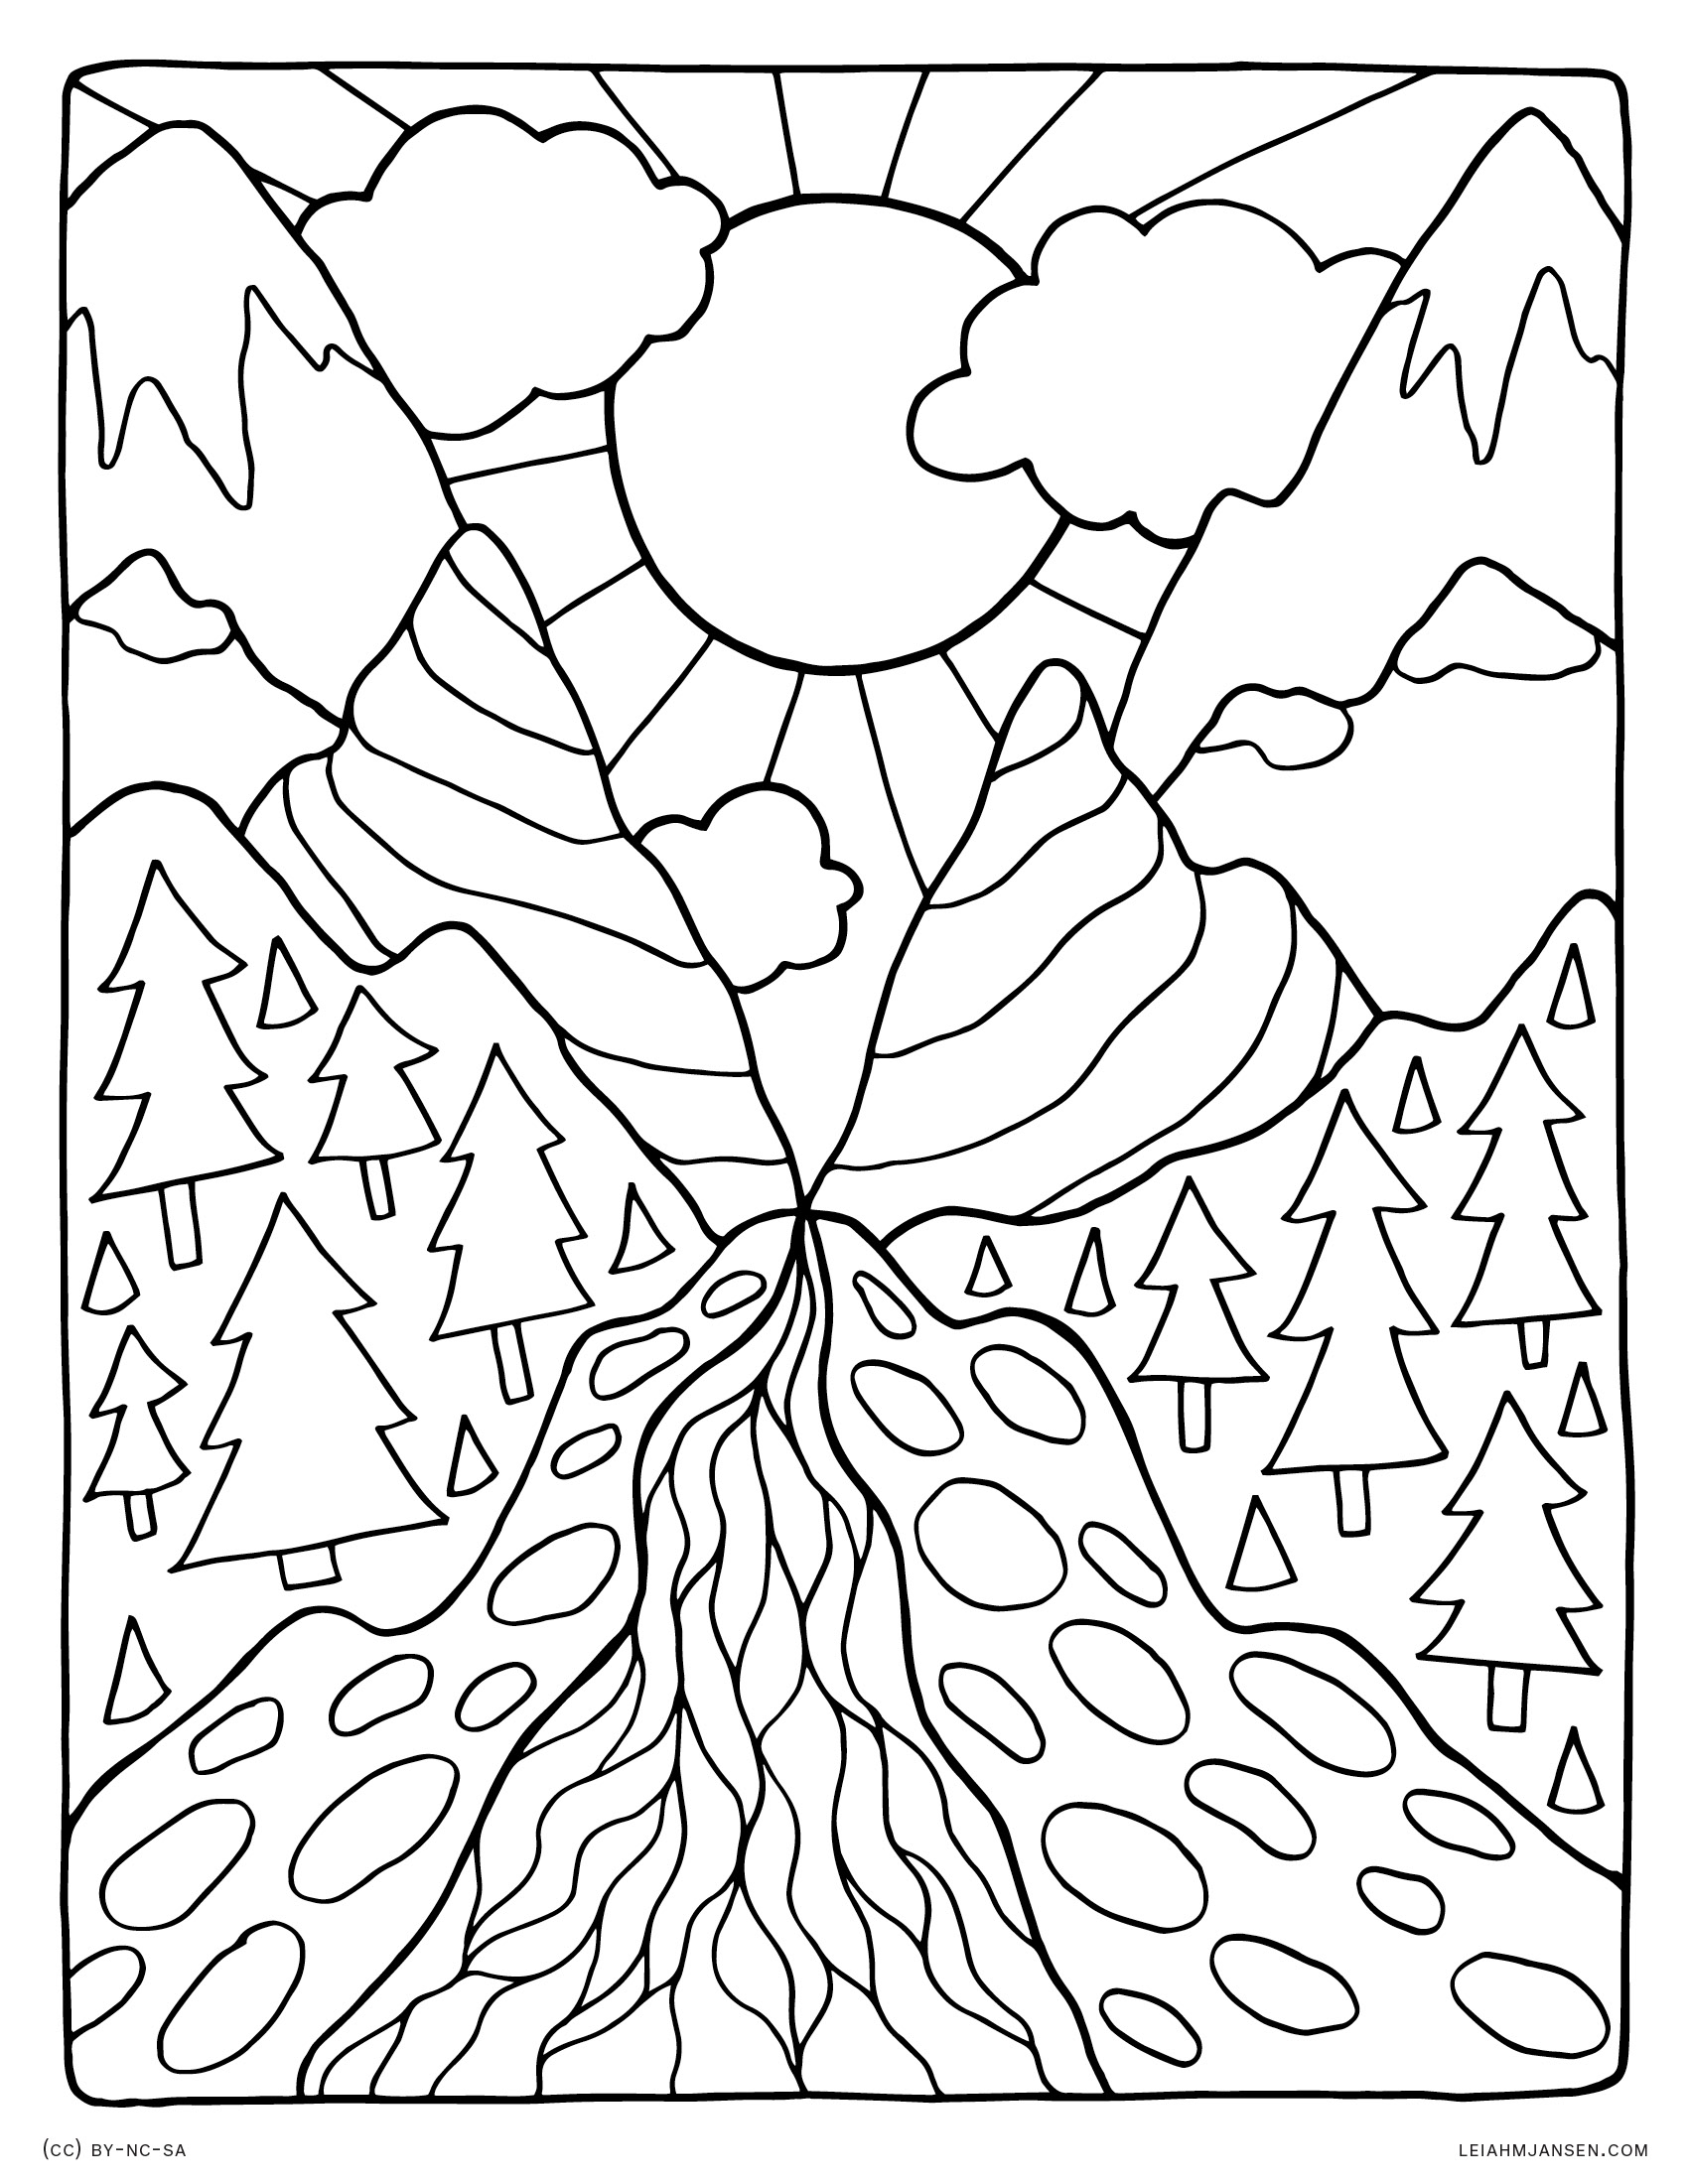 Free Printable Landscape Coloring Pages For Adults At Getdrawings Free Download